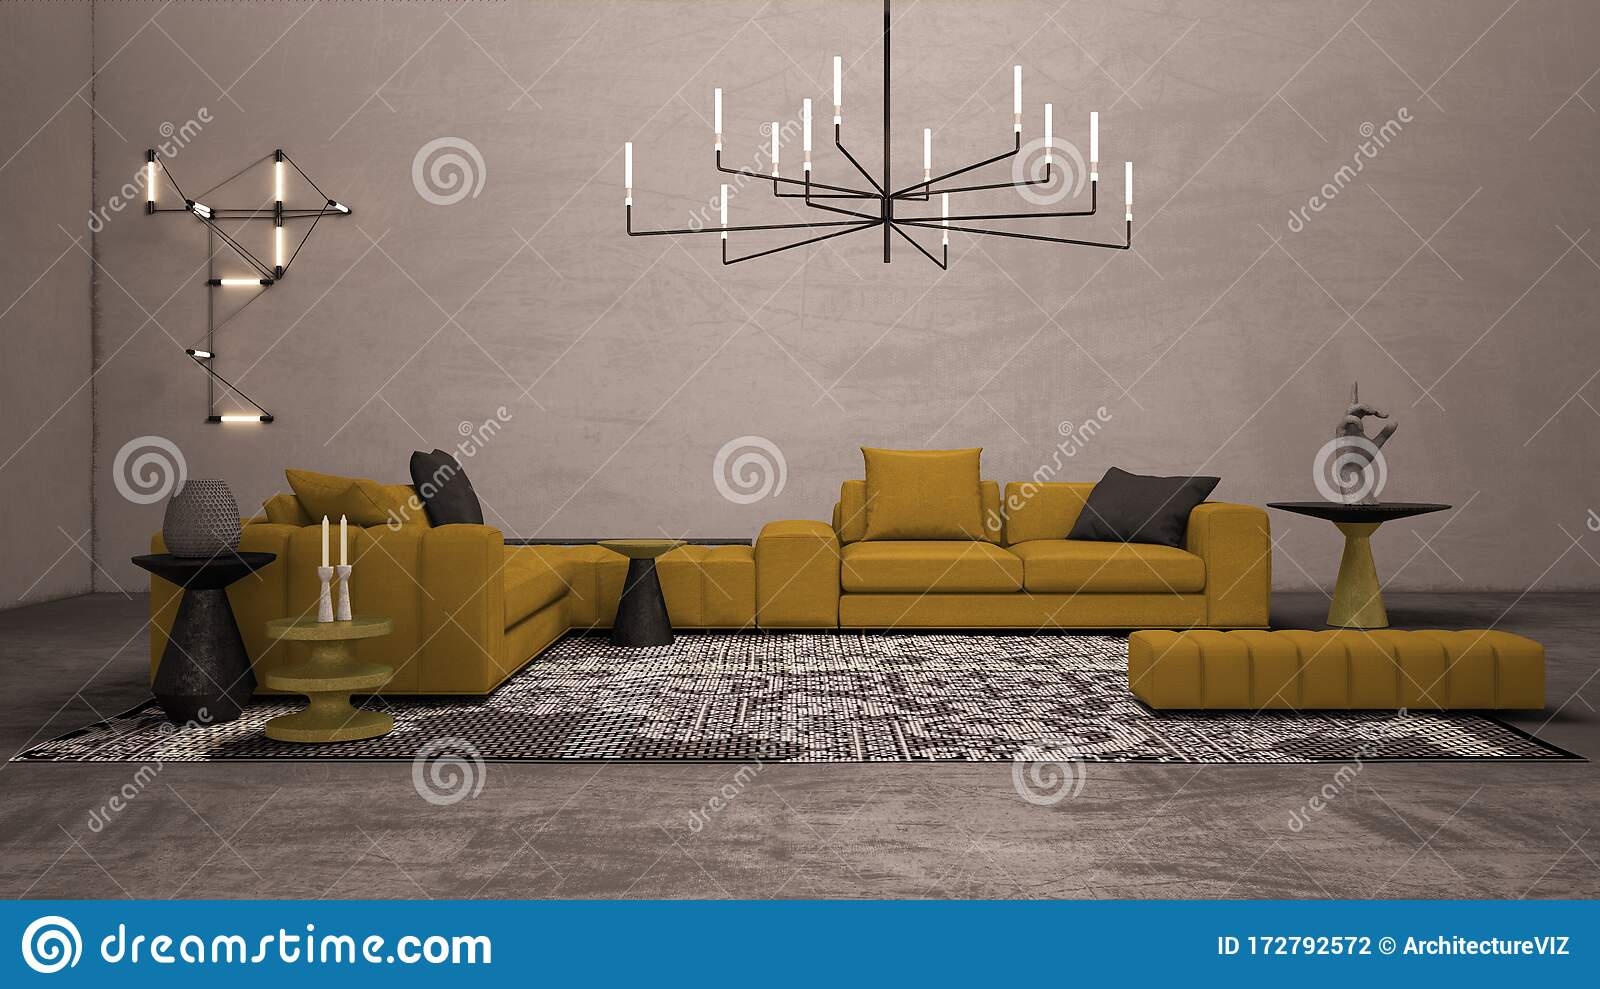 Colorful Living Room With Concrete Plaster Wall And Floor Lounge With Large Yellow Sofa Side Tables And Decors Carpet Wall And Stock Illustration Illustration Of Decoration Interior 172792572